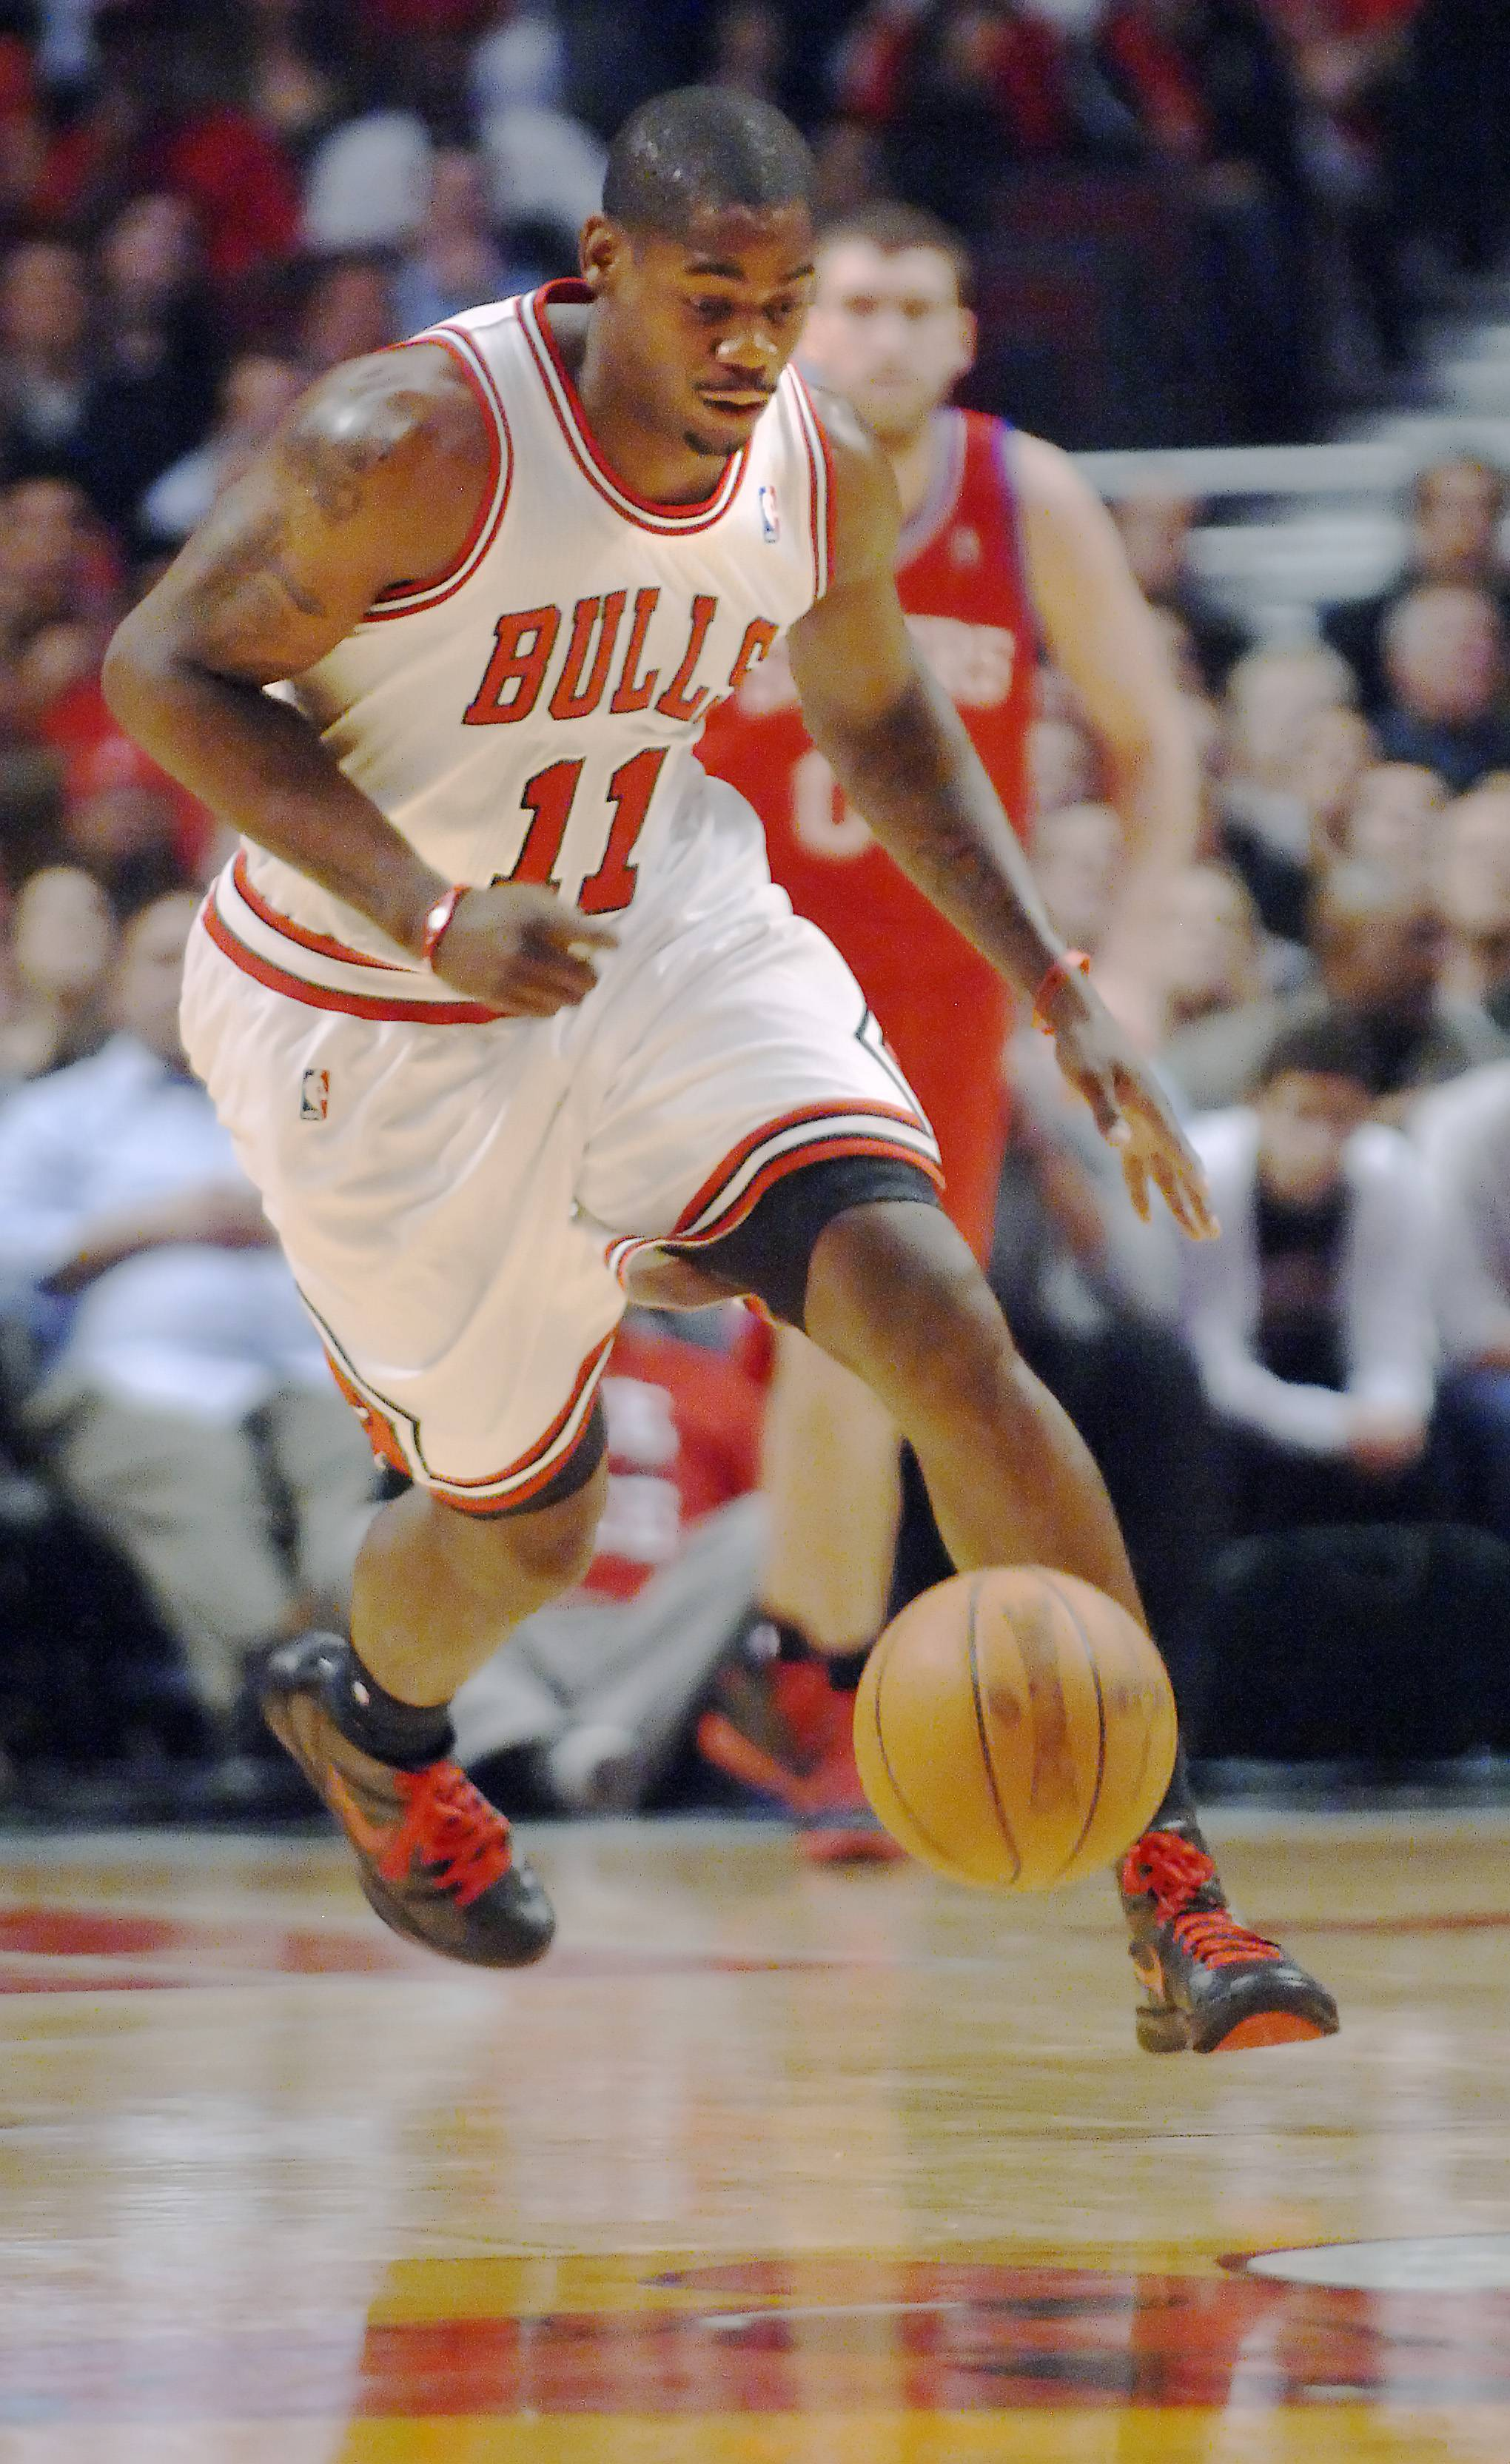 @Caption credit:John Starks/jstarks@dailyherald.com/fileThe Chicago Bulls have signed freeagent swingman Ronnie Brewer for the rest of the 2014 season. Brewer played with the Bulls from 2010-12. He was released by Houston earlier this year.